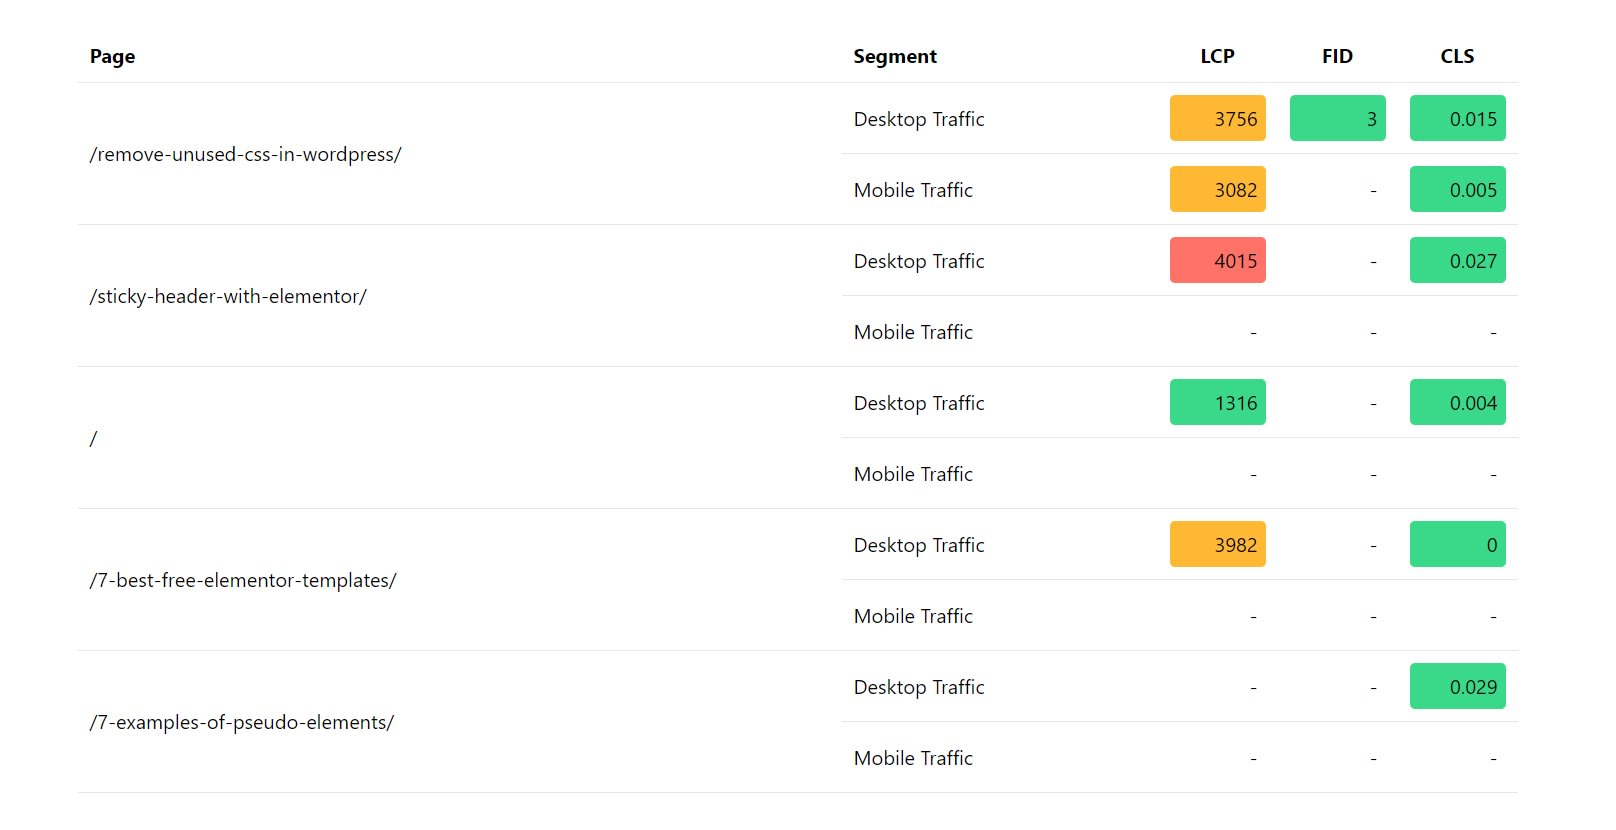 Results breakdown by Top Pages in Web vitals report